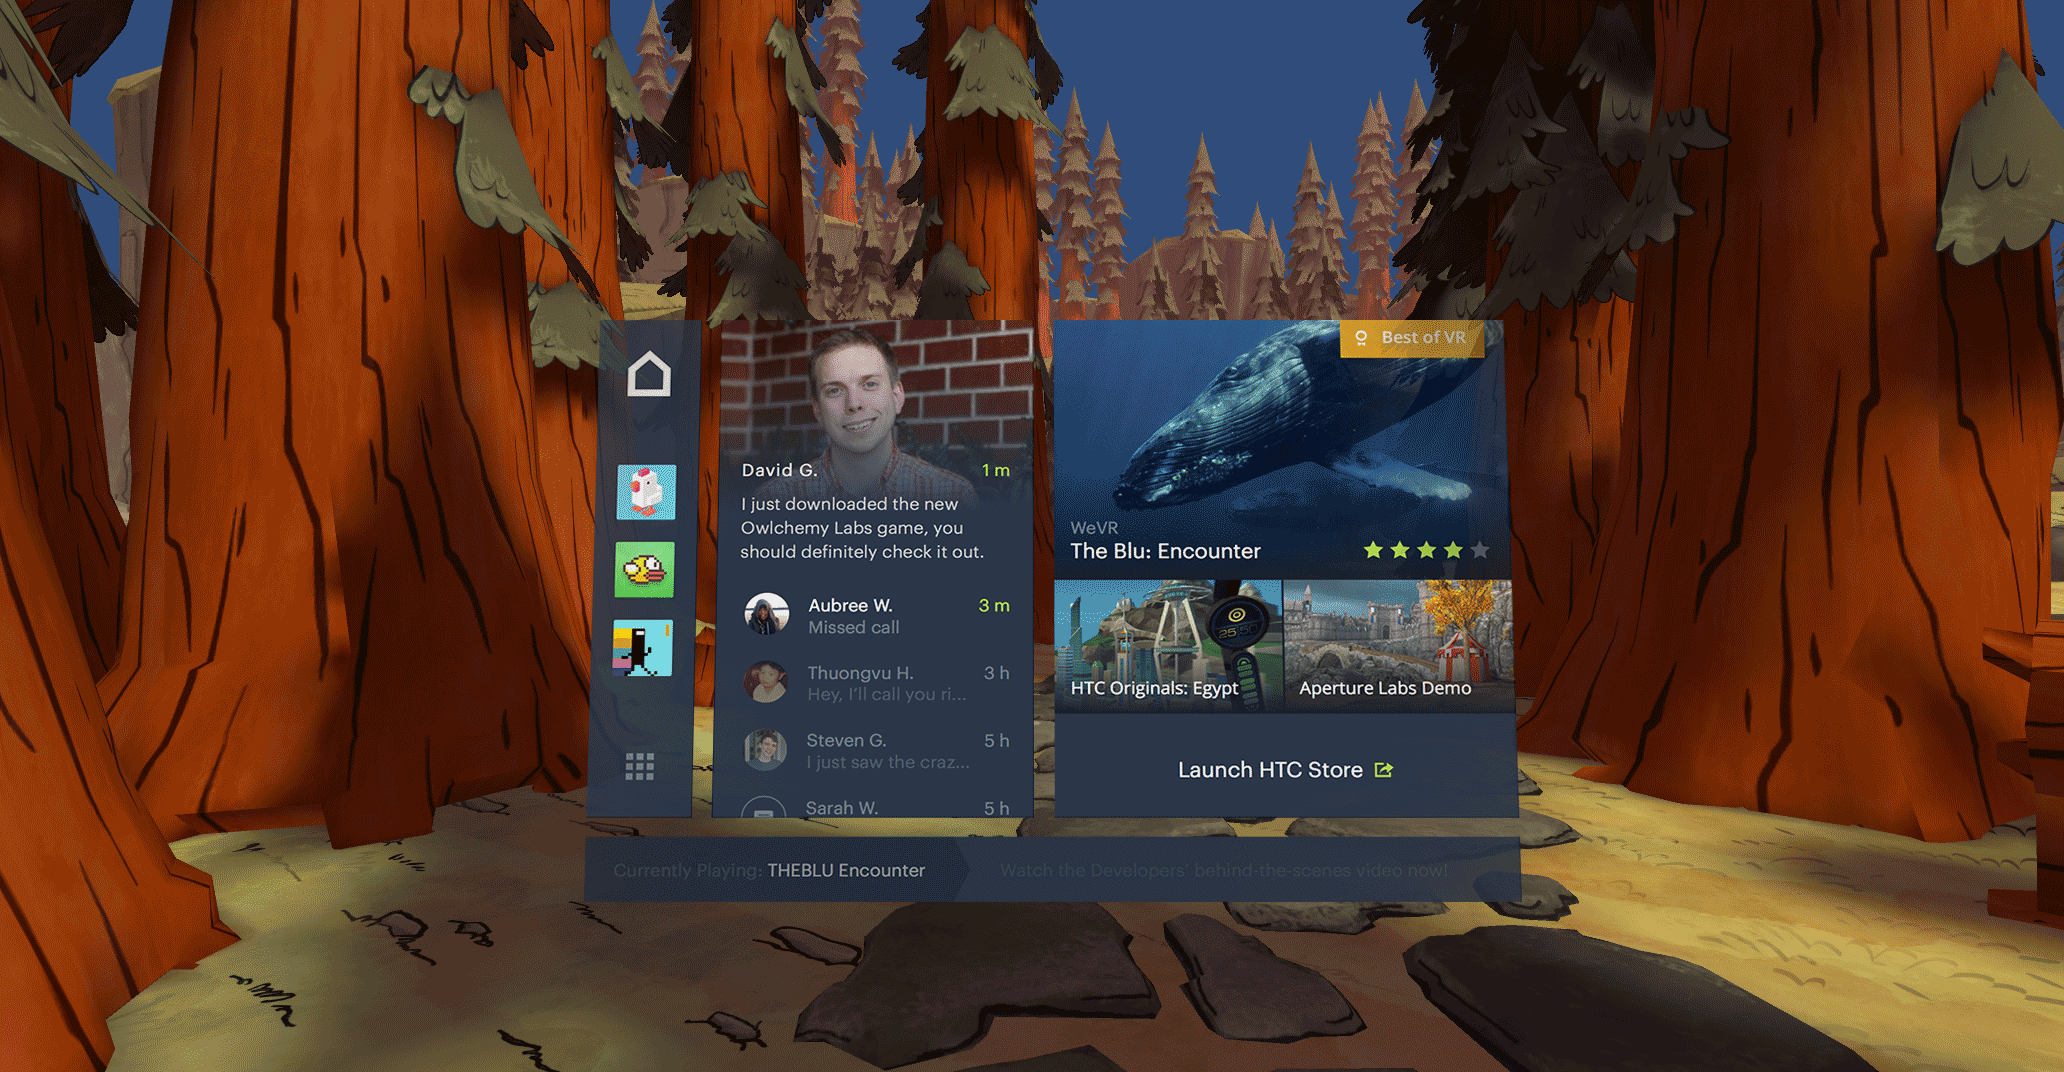 Early mockup of Vive dashboard